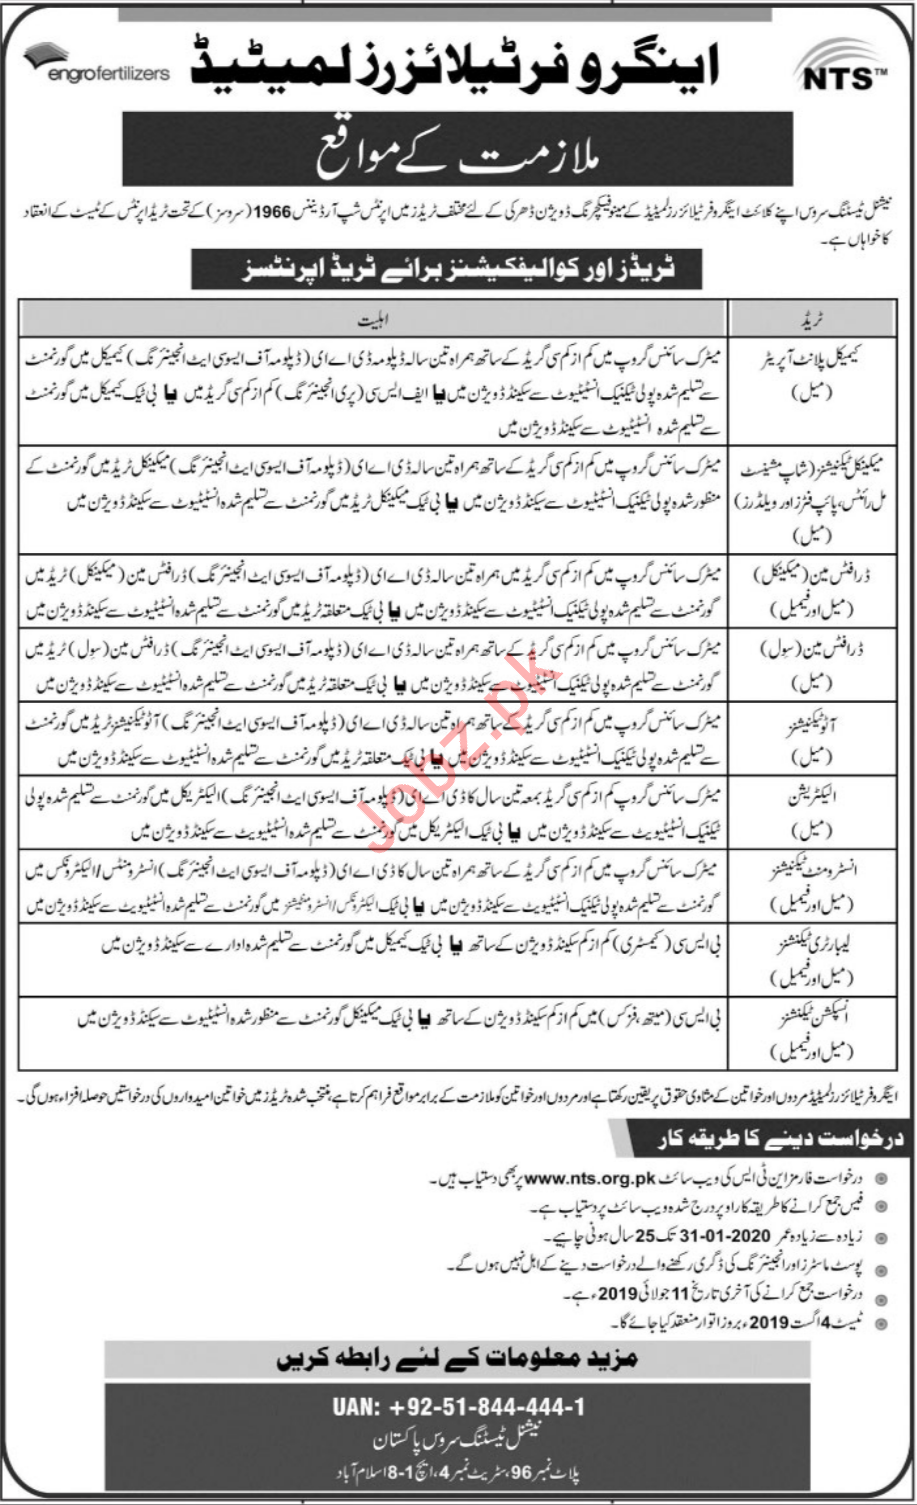 Engro Fertilizers Limited Jobs 2019 Through NTS